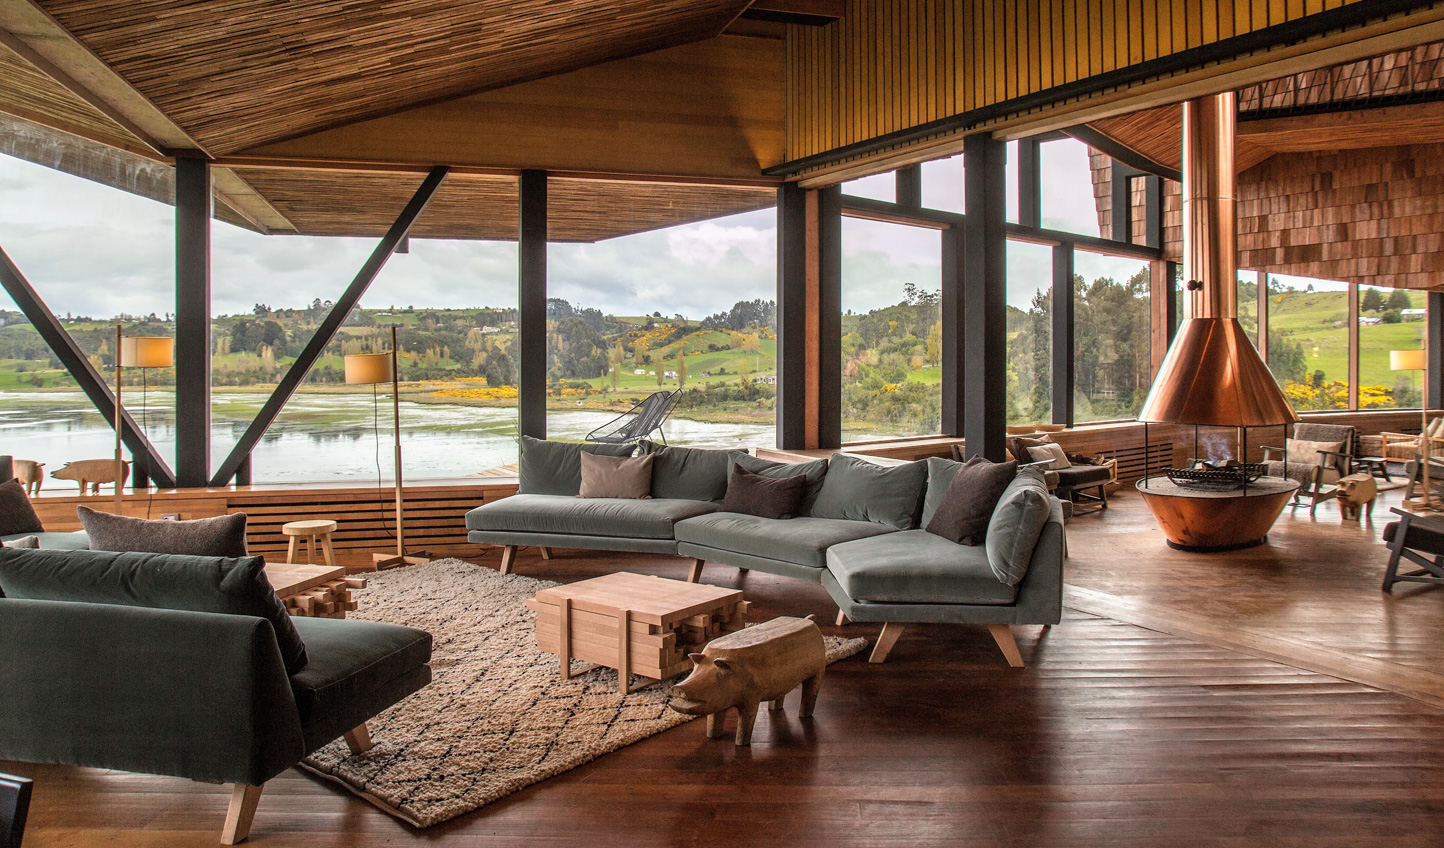 Slip into sumptuous comfort and spectacular views at Tierra Chiloe